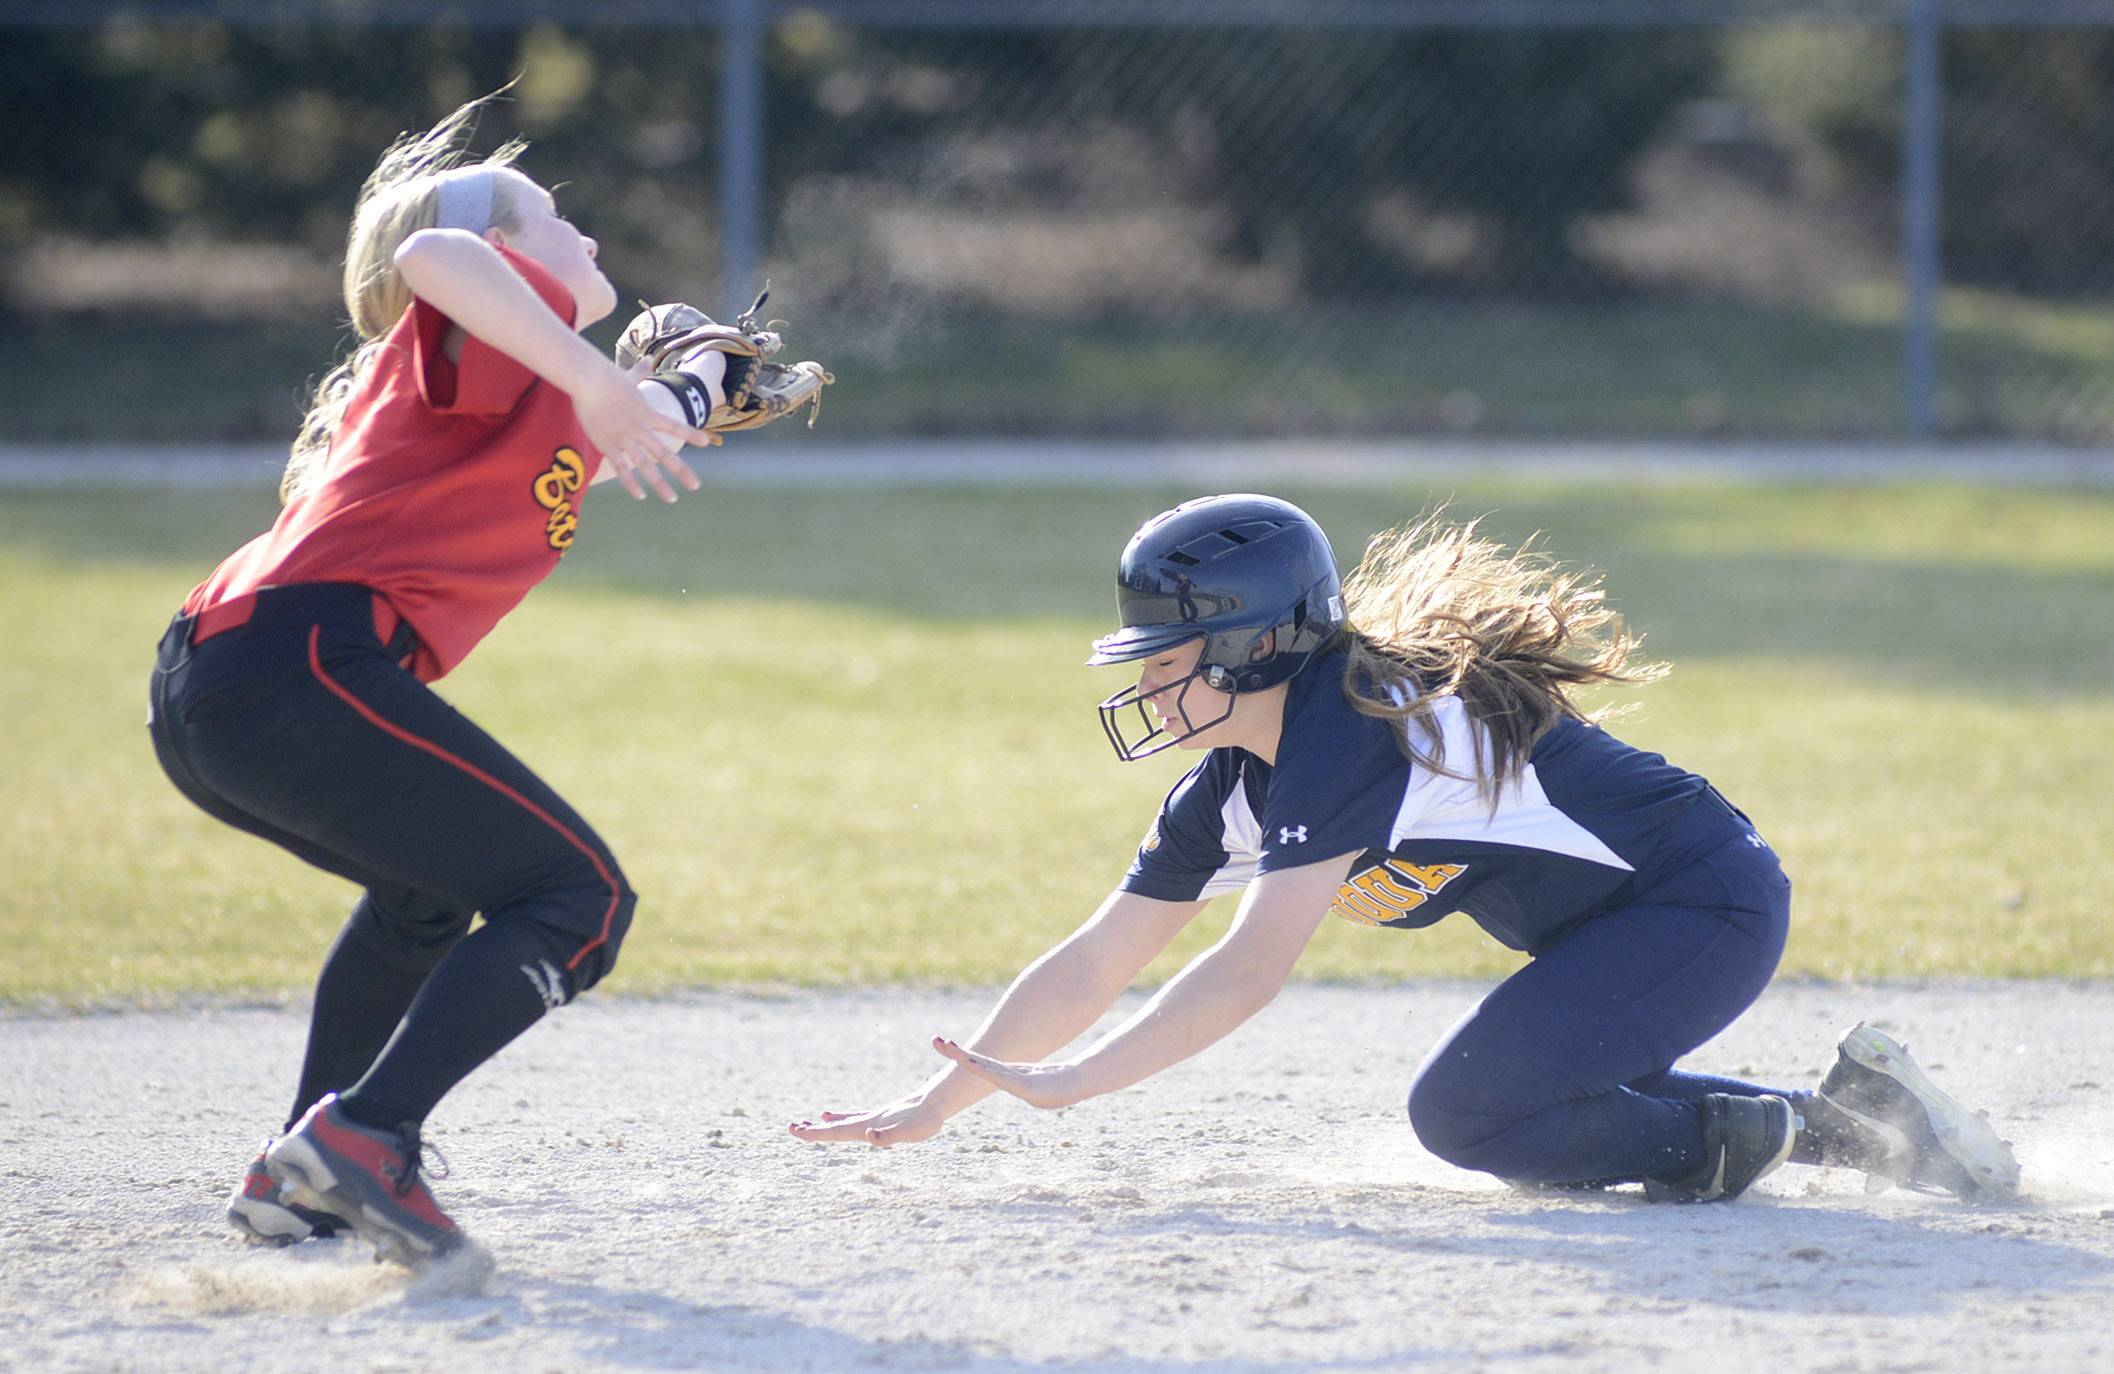 Neuqua Valley's Jenny Budds preps to safely slide into second base past Batavia's Elyse Burns in the fourth inning on Wednesday, April 9.